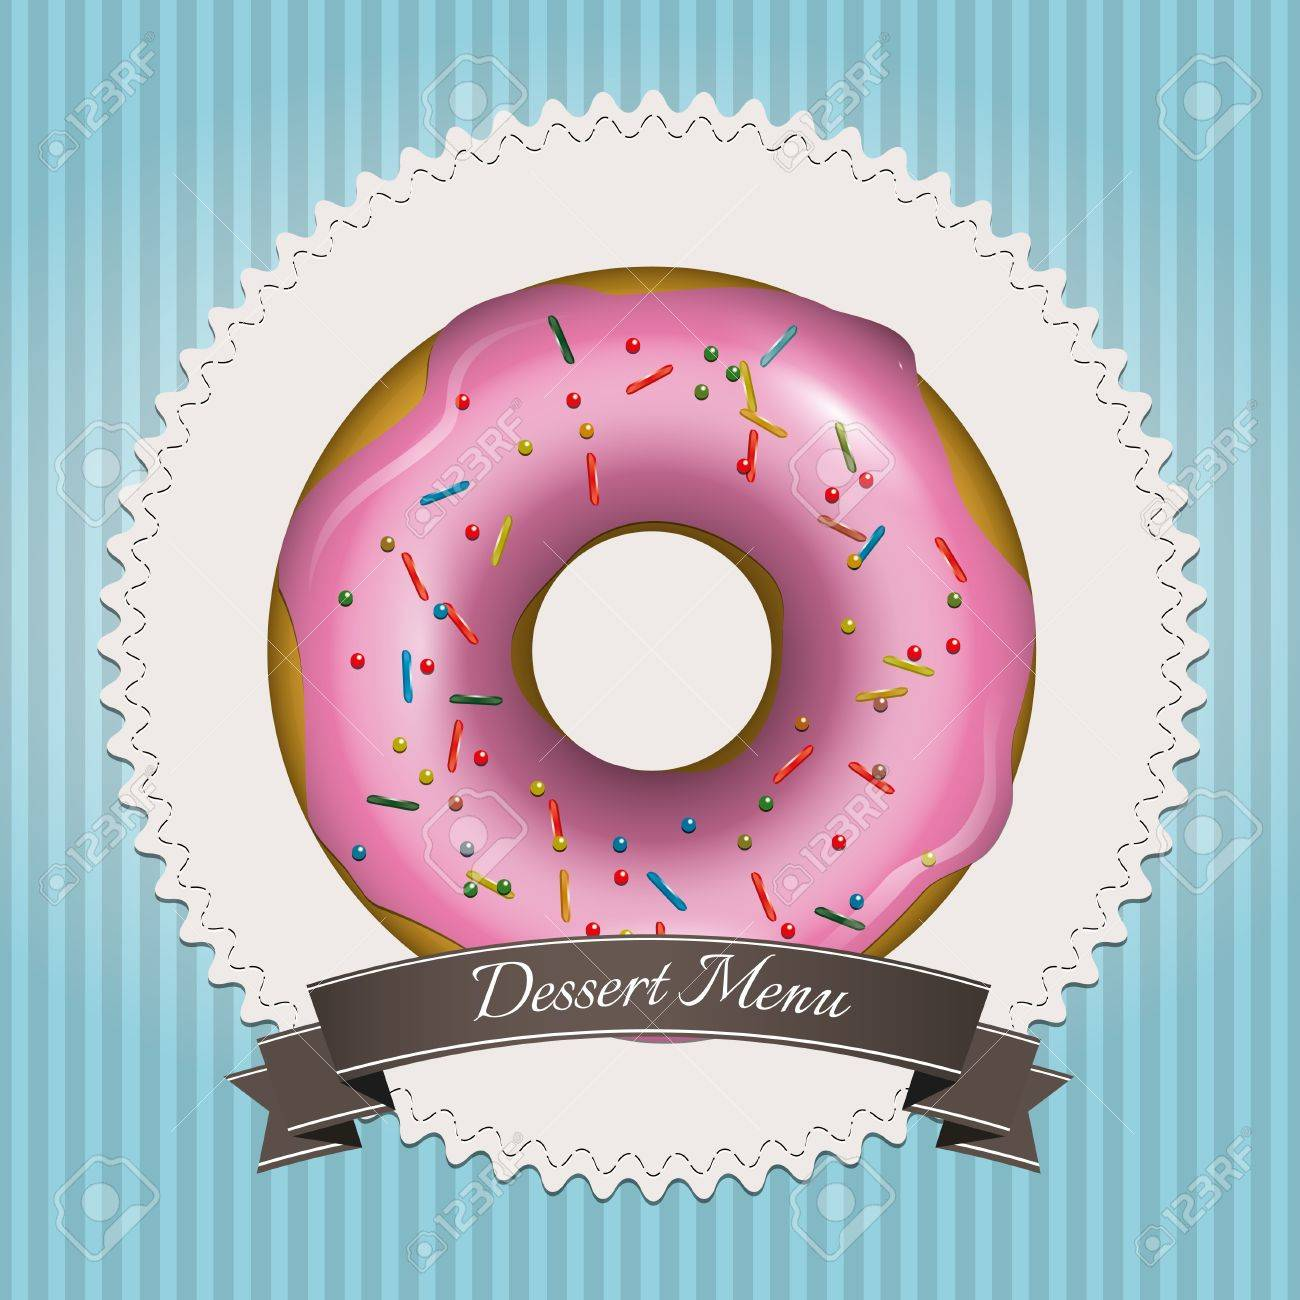 Sweet dessert menu design with pink donut and brown ribbon Stock Vector - 17676095